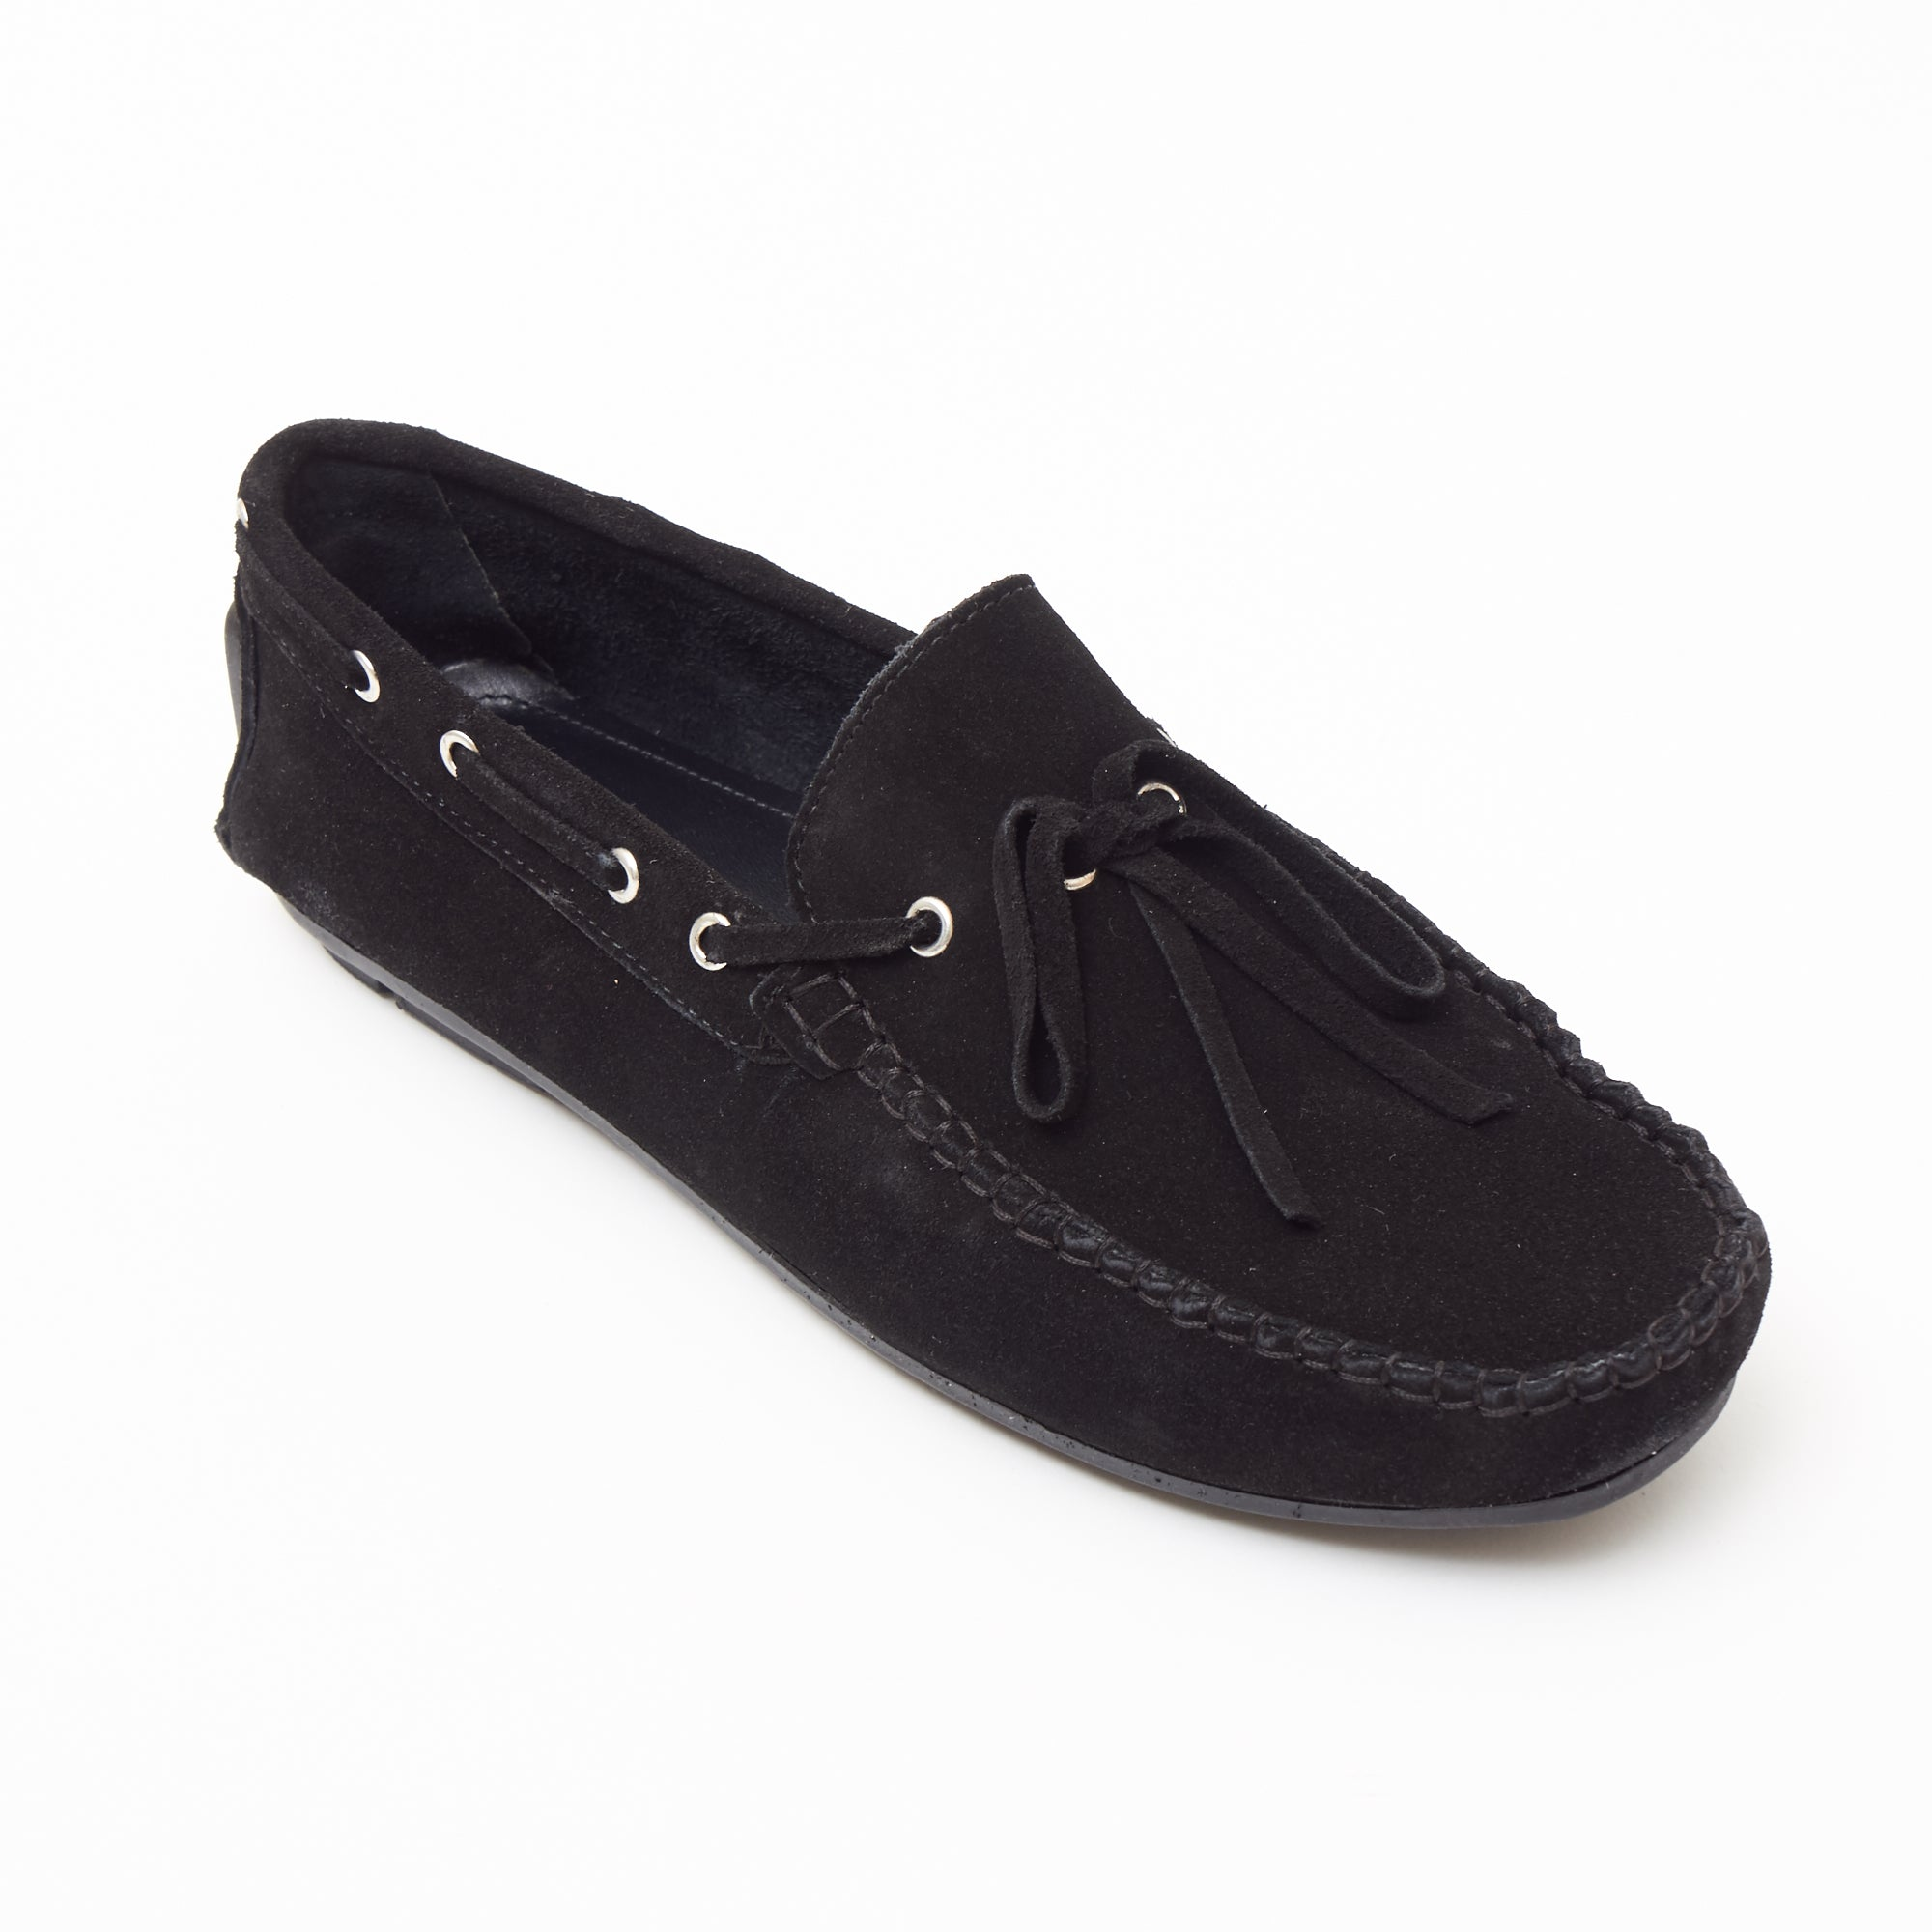 Mens Suede Casual Slip On Shoes - 4611-L_Black